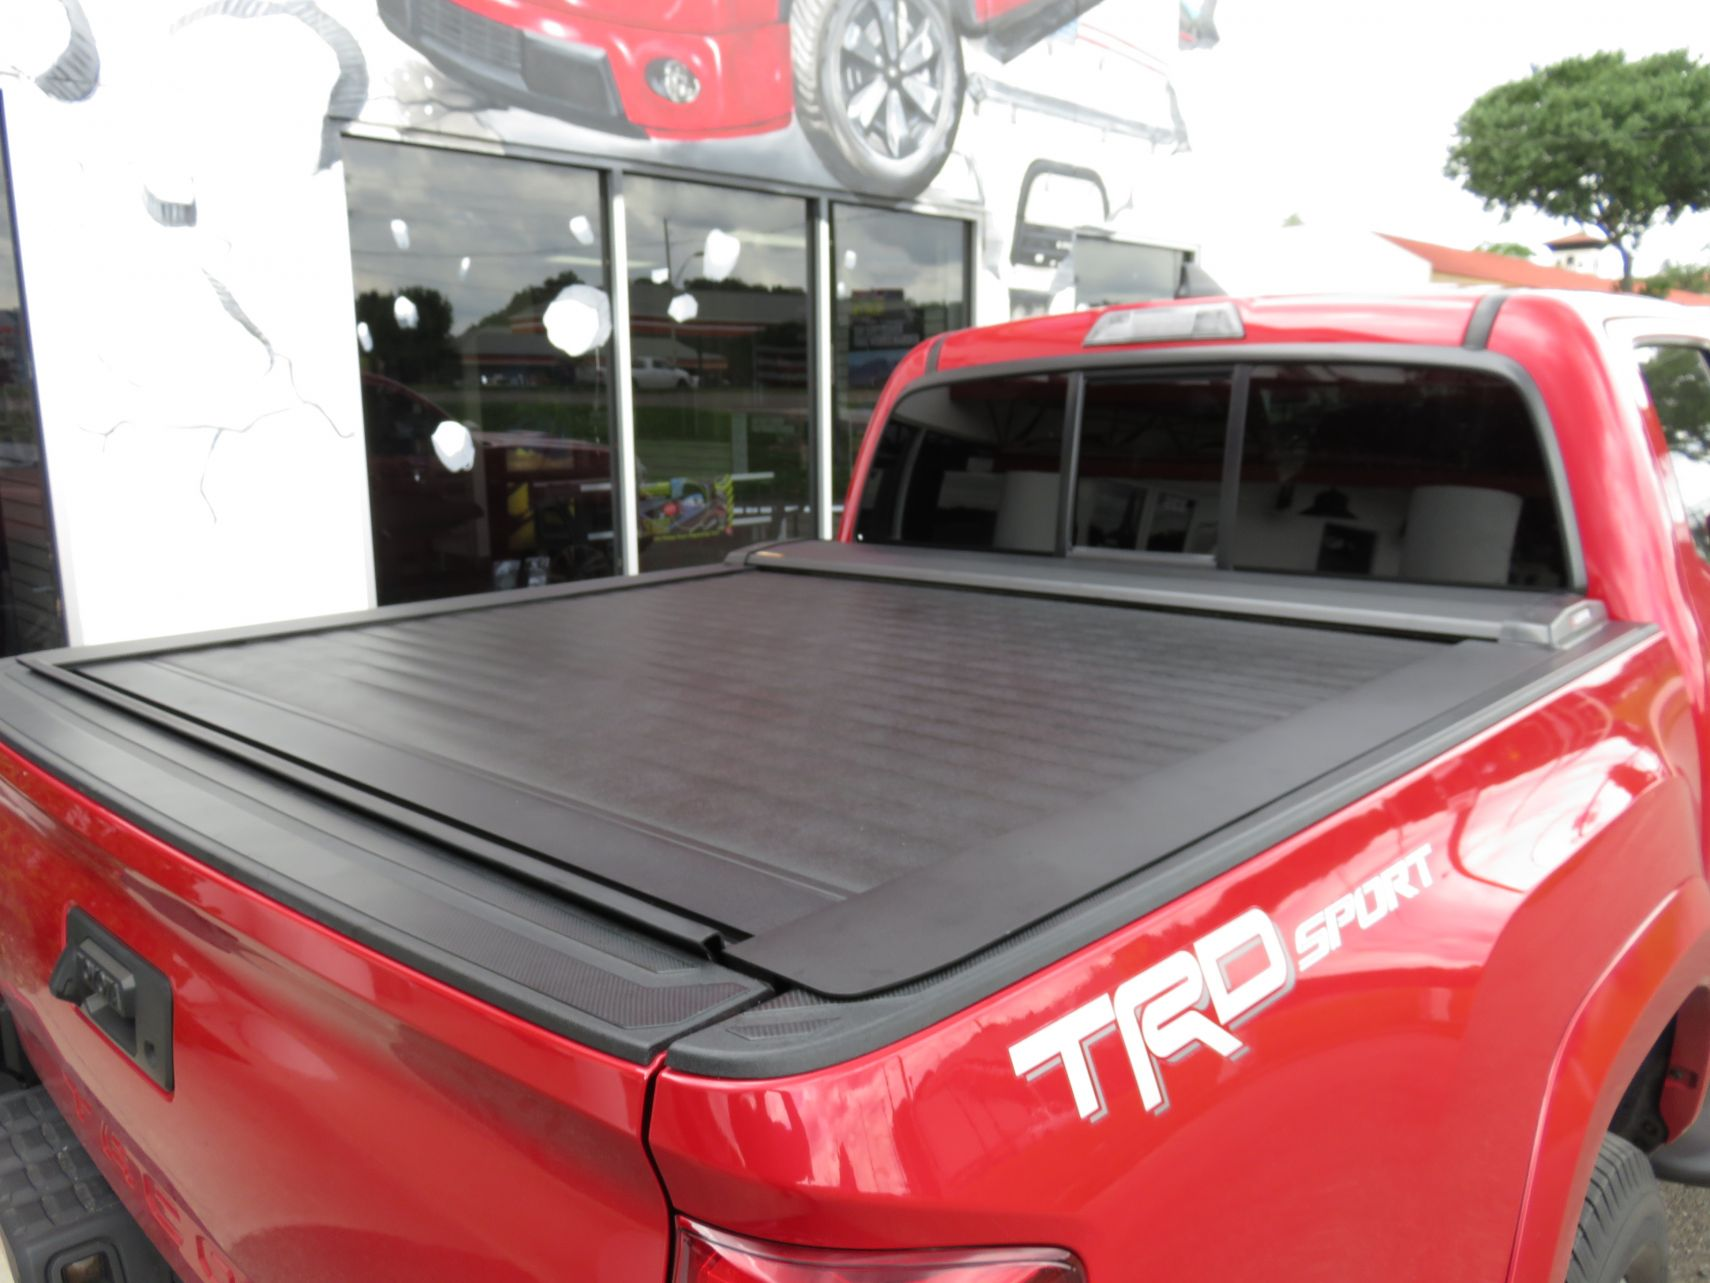 2017 Red Toyota Tacoma Leer Ricochet Cover Topperking Topperking Providing All Of Tampa Bay With Quality Truck Accessories